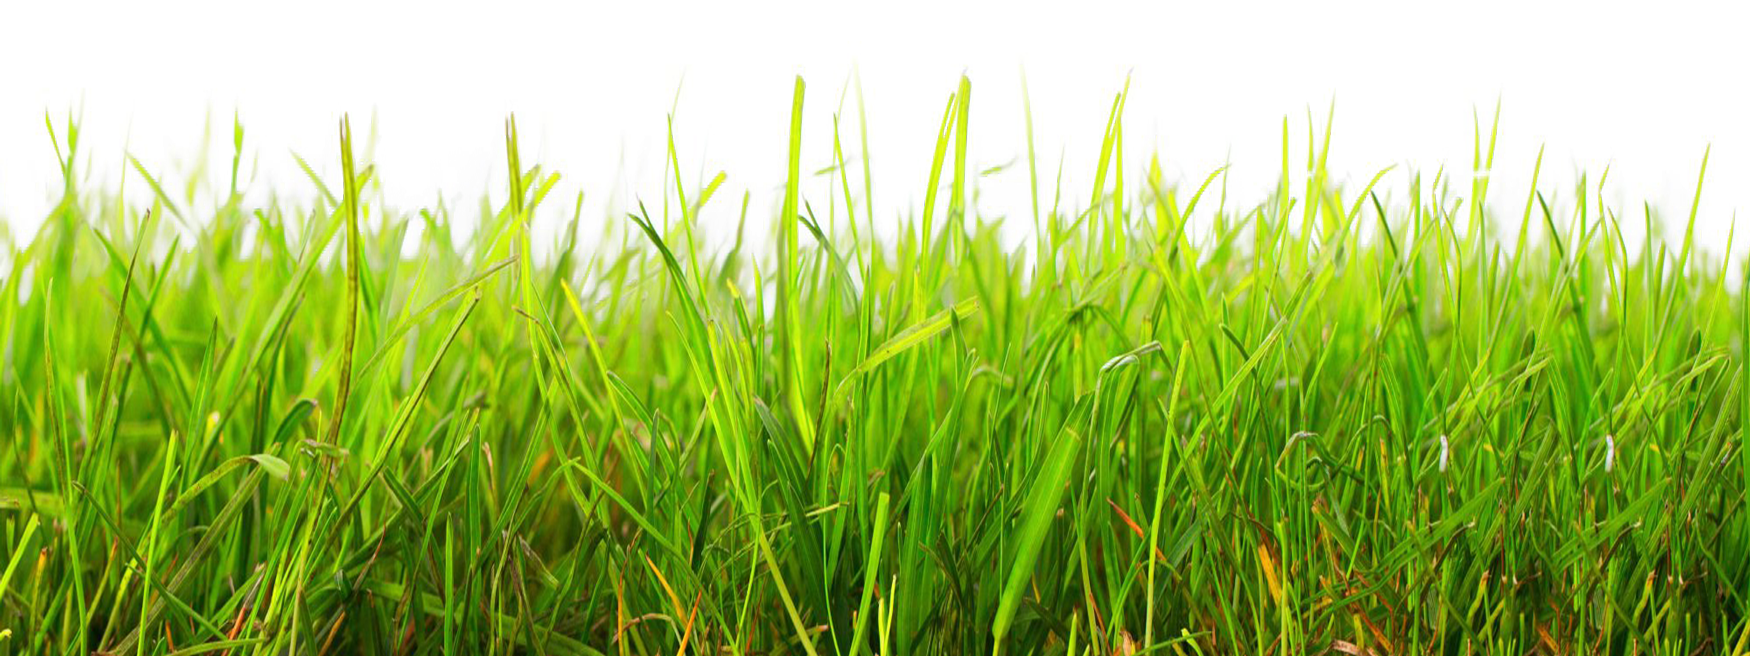 Transparent Grass - Bing images